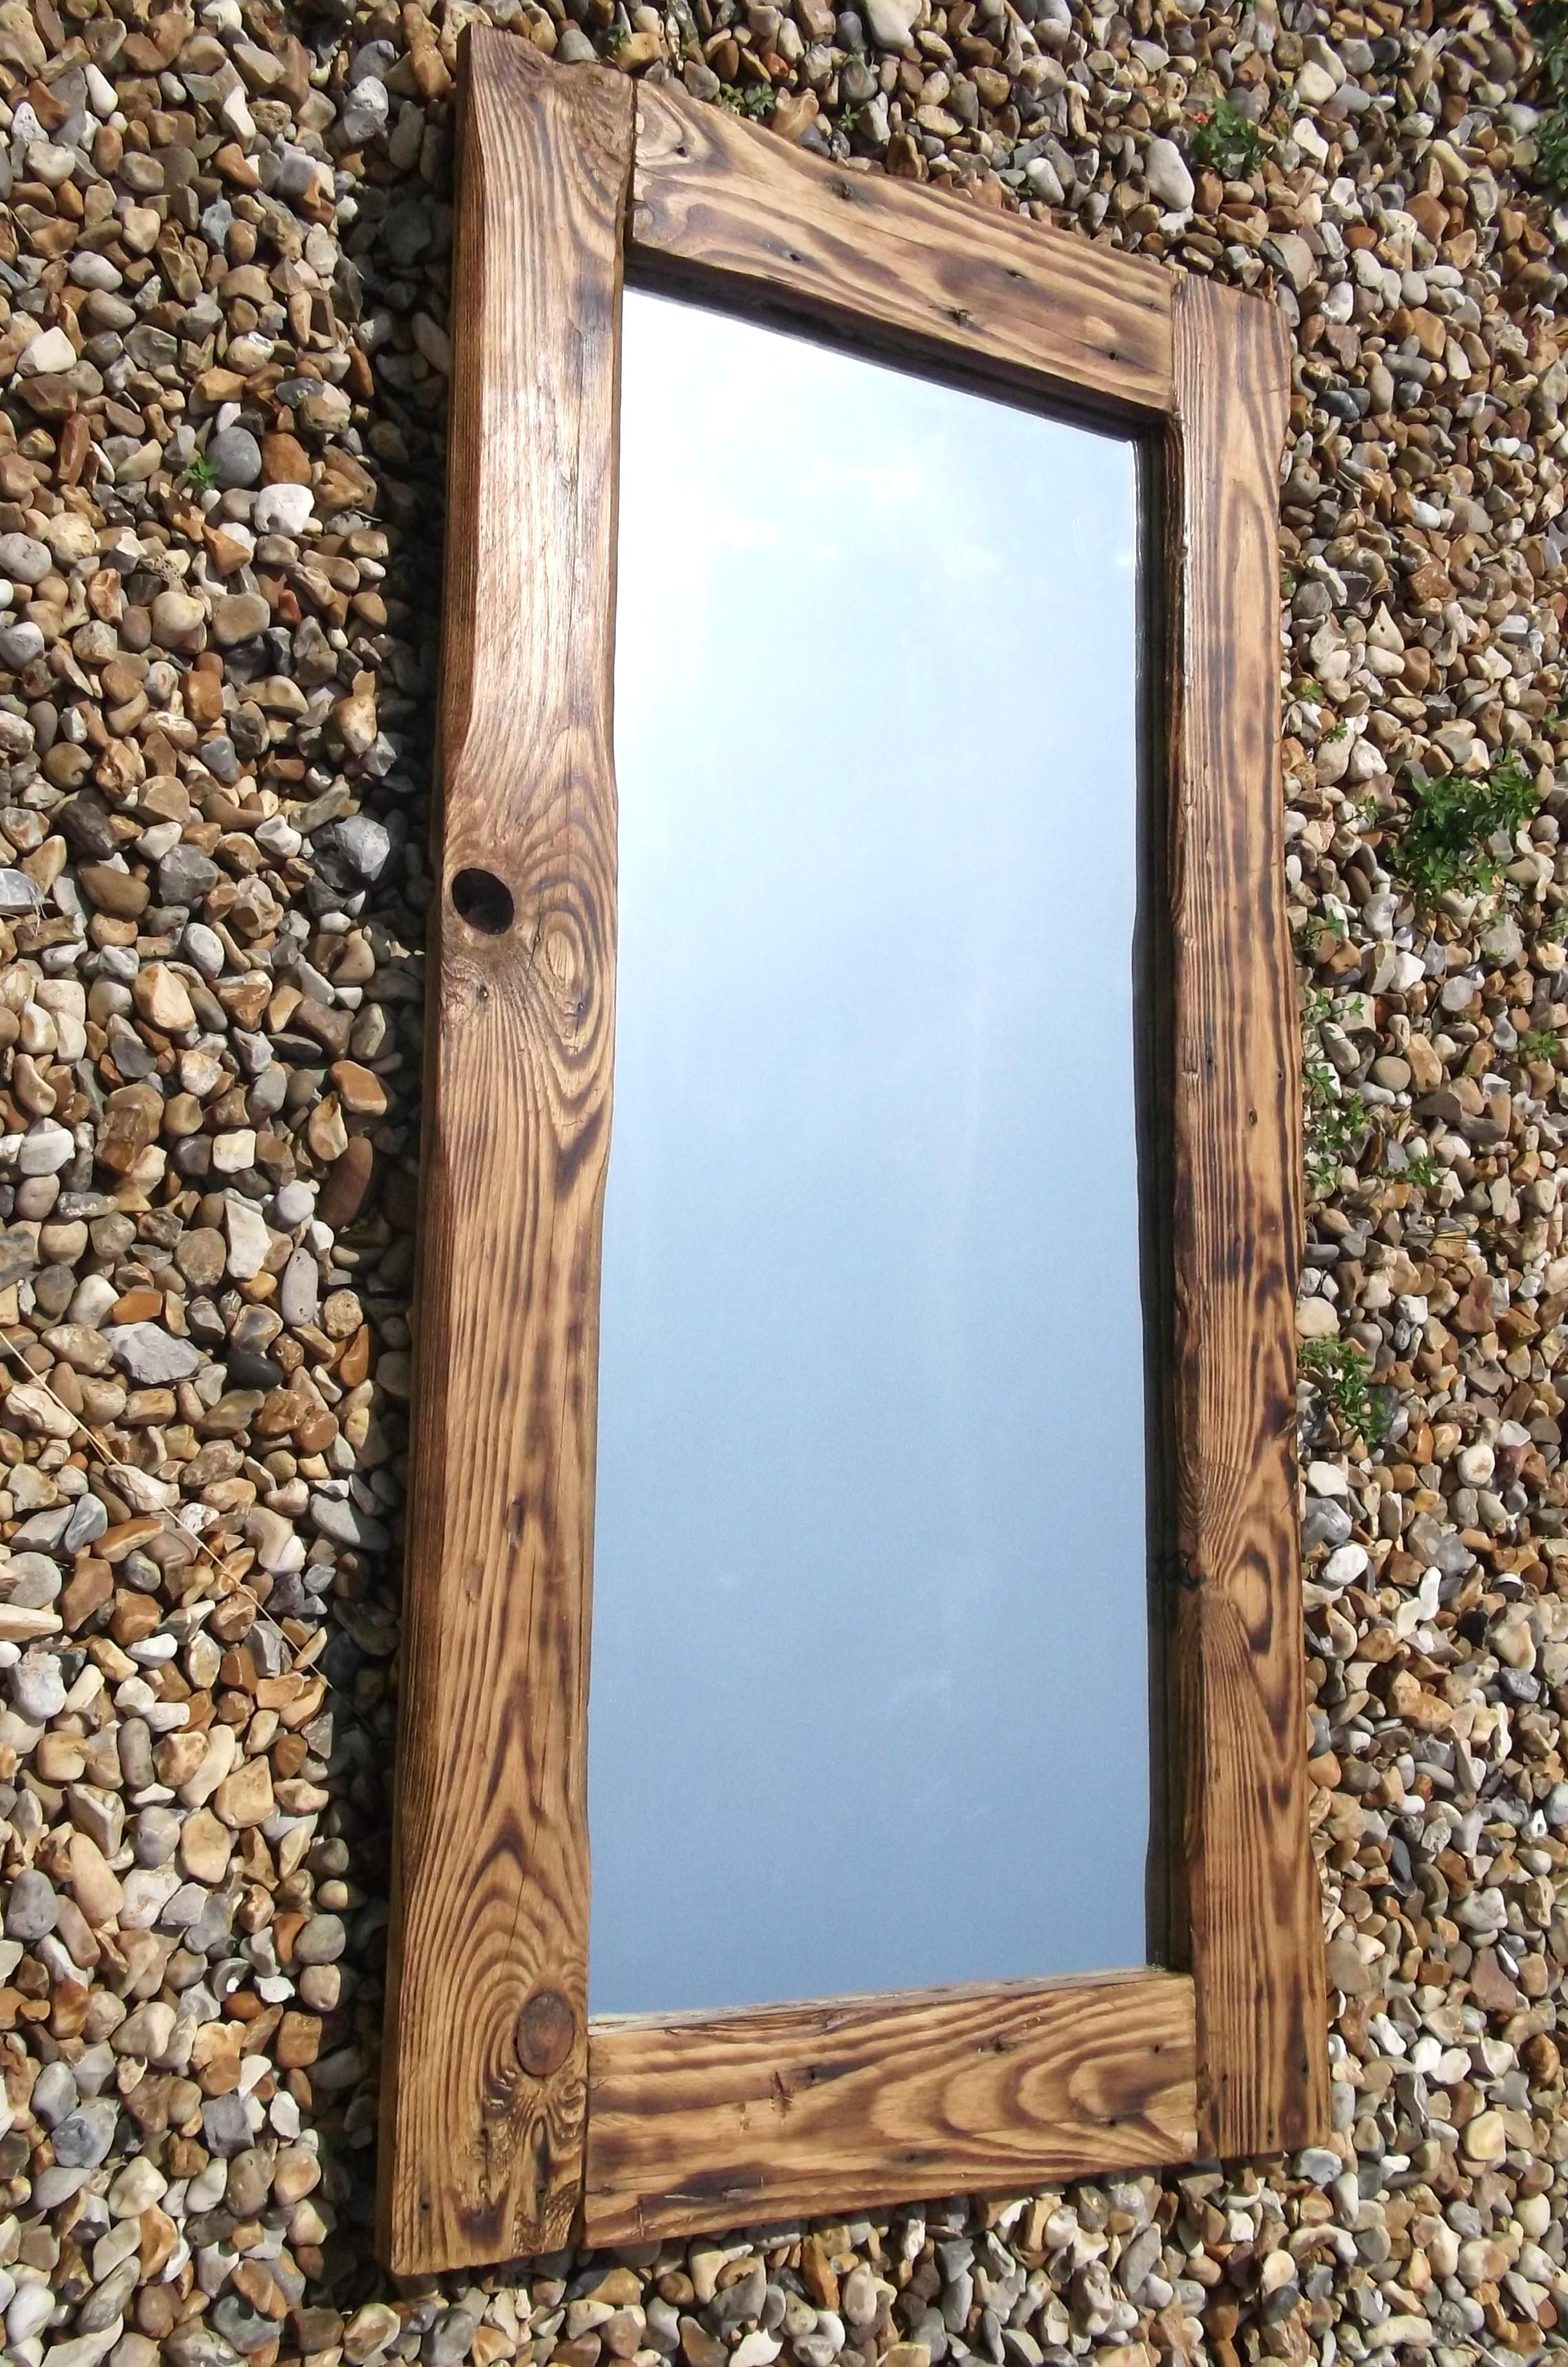 Reclaimed Wood Mirrors | Dave's Beach Hut For Decorative Wooden Mirrors (View 13 of 20)